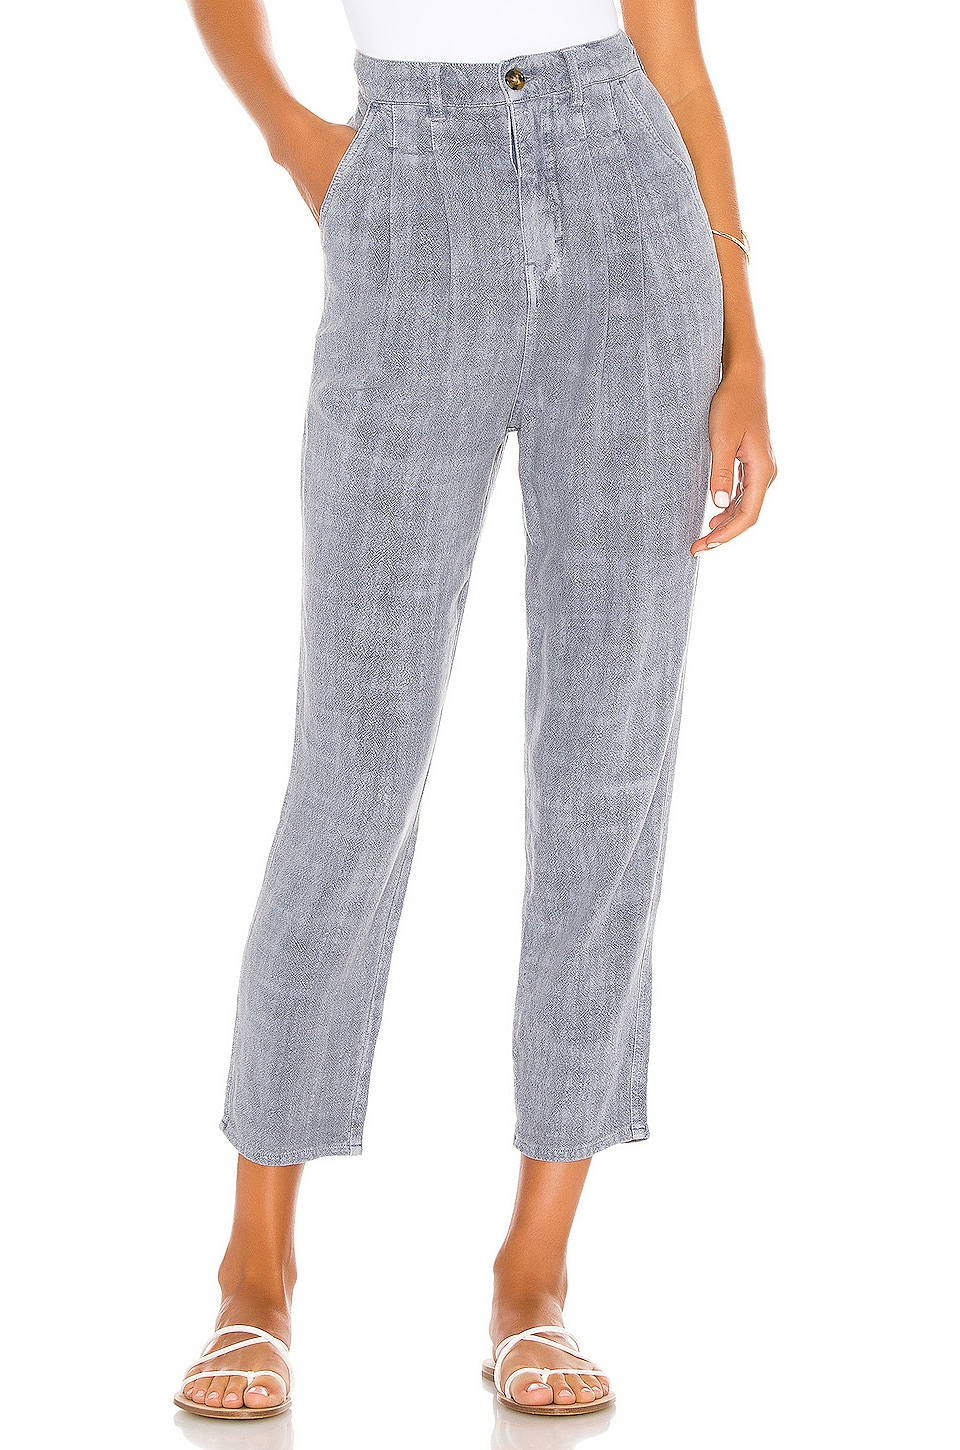 Faded Love Pant                     Free People 1